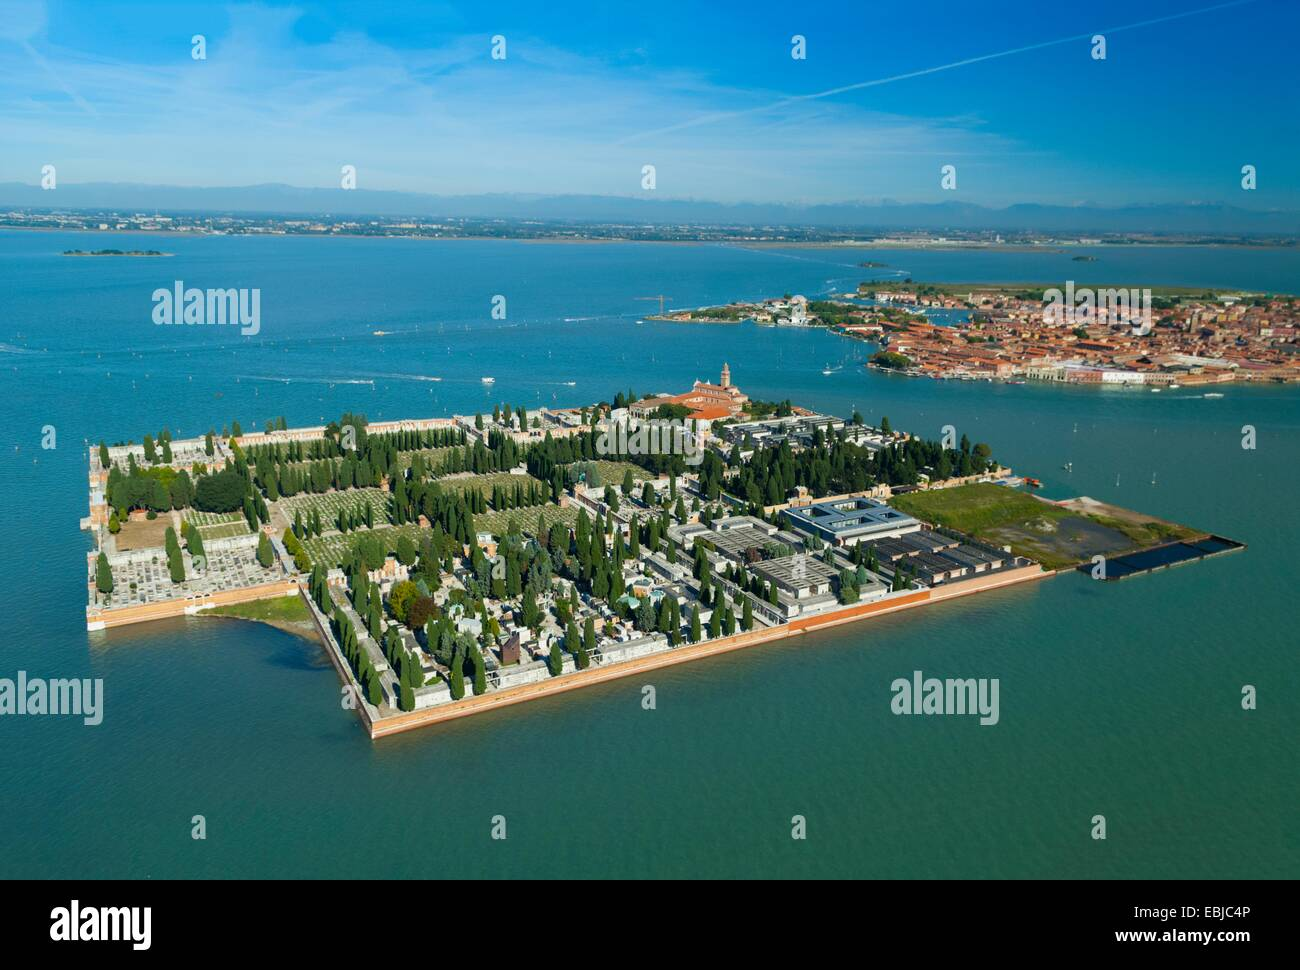 Aerial view of isola San Michele island, Venice lagoon, Italy, Europe Stock Photo